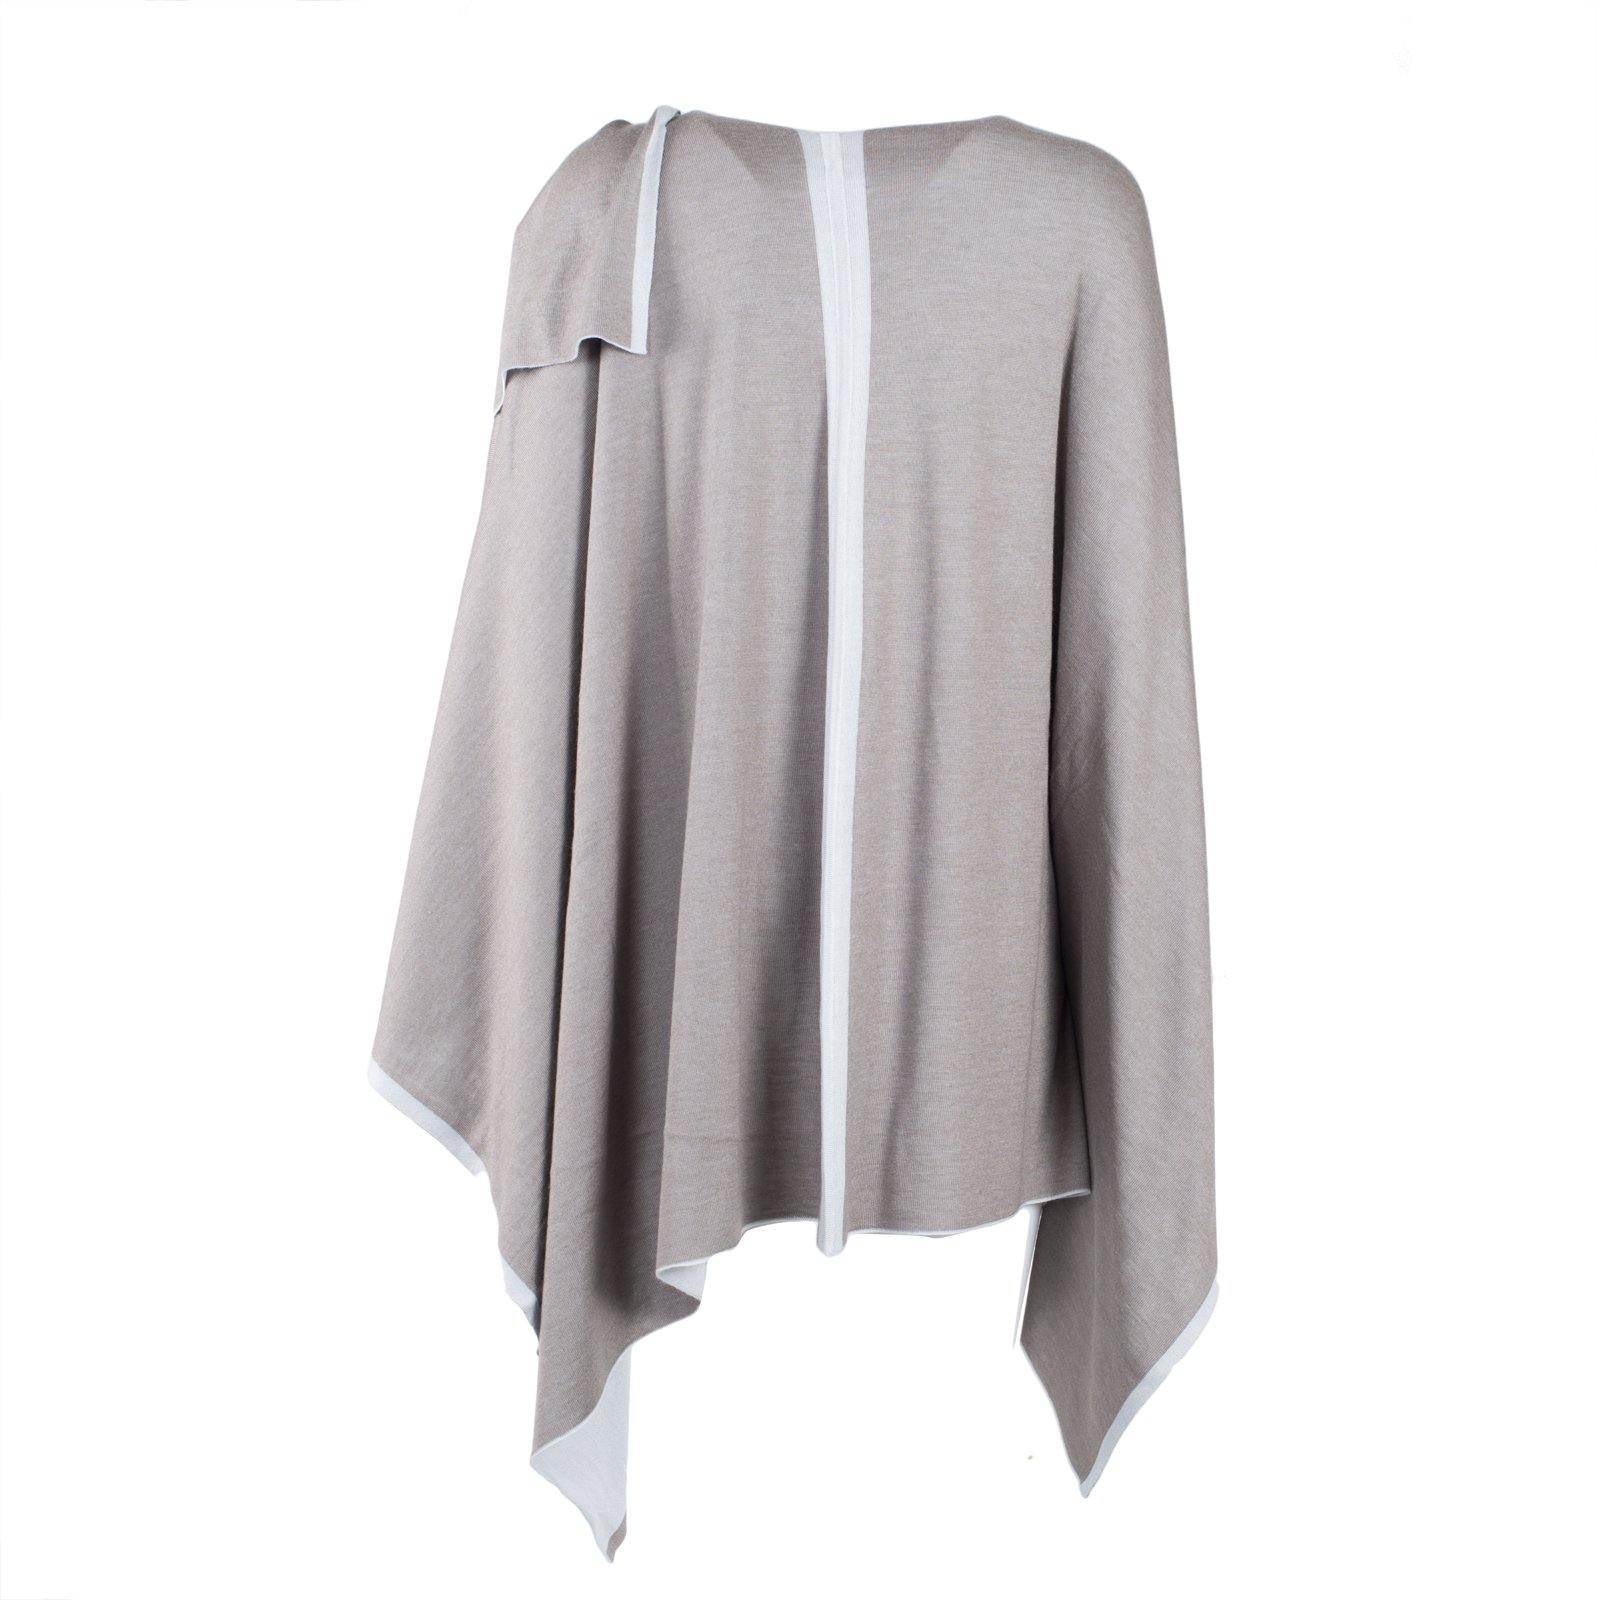 Large Reversible Pashmina Cape in White and Light Grey - Jennifer Tattanelli